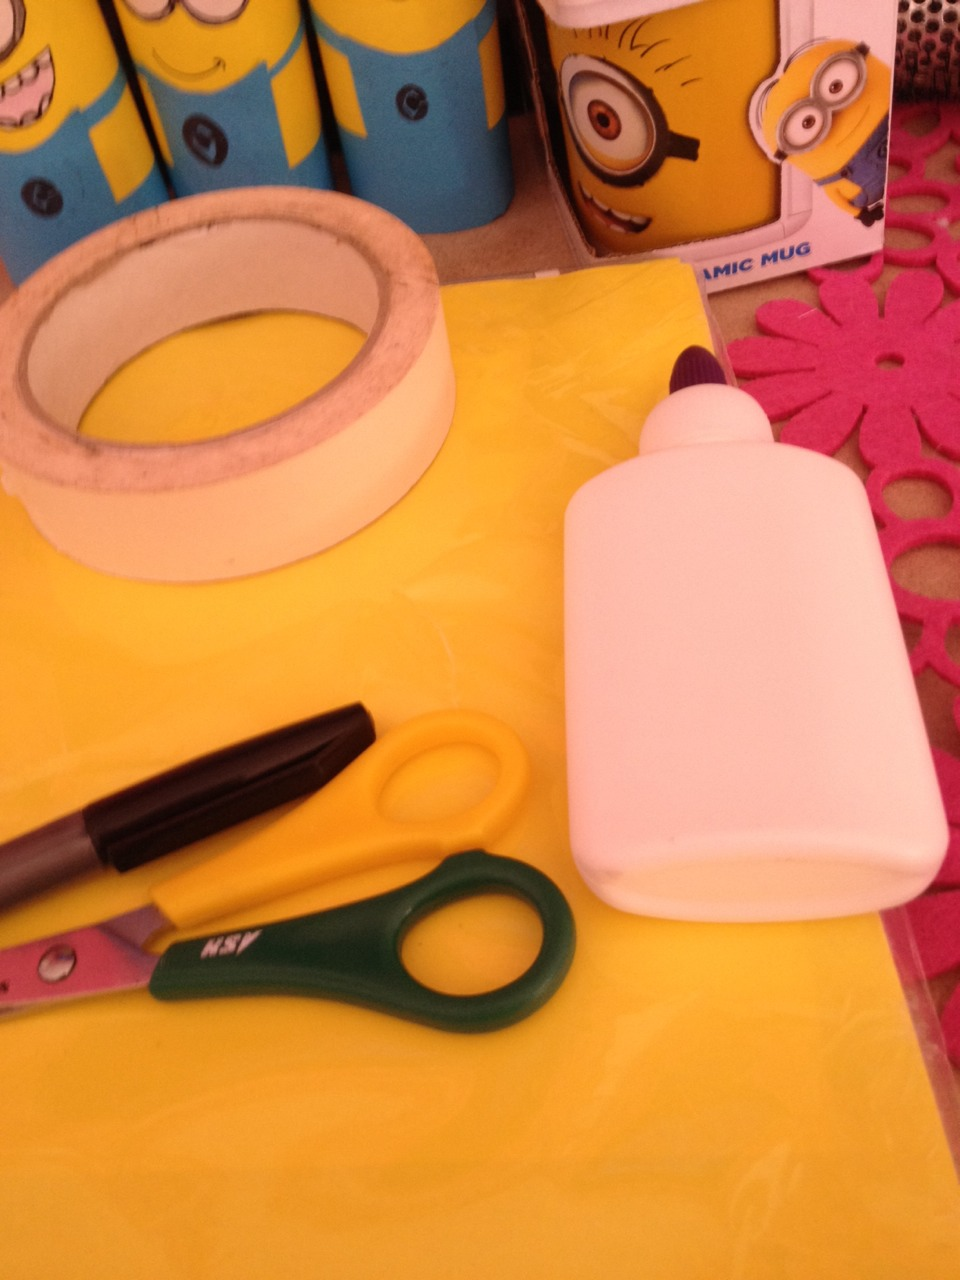 Also you will need scissors, double tape, glue and few felt tip pens